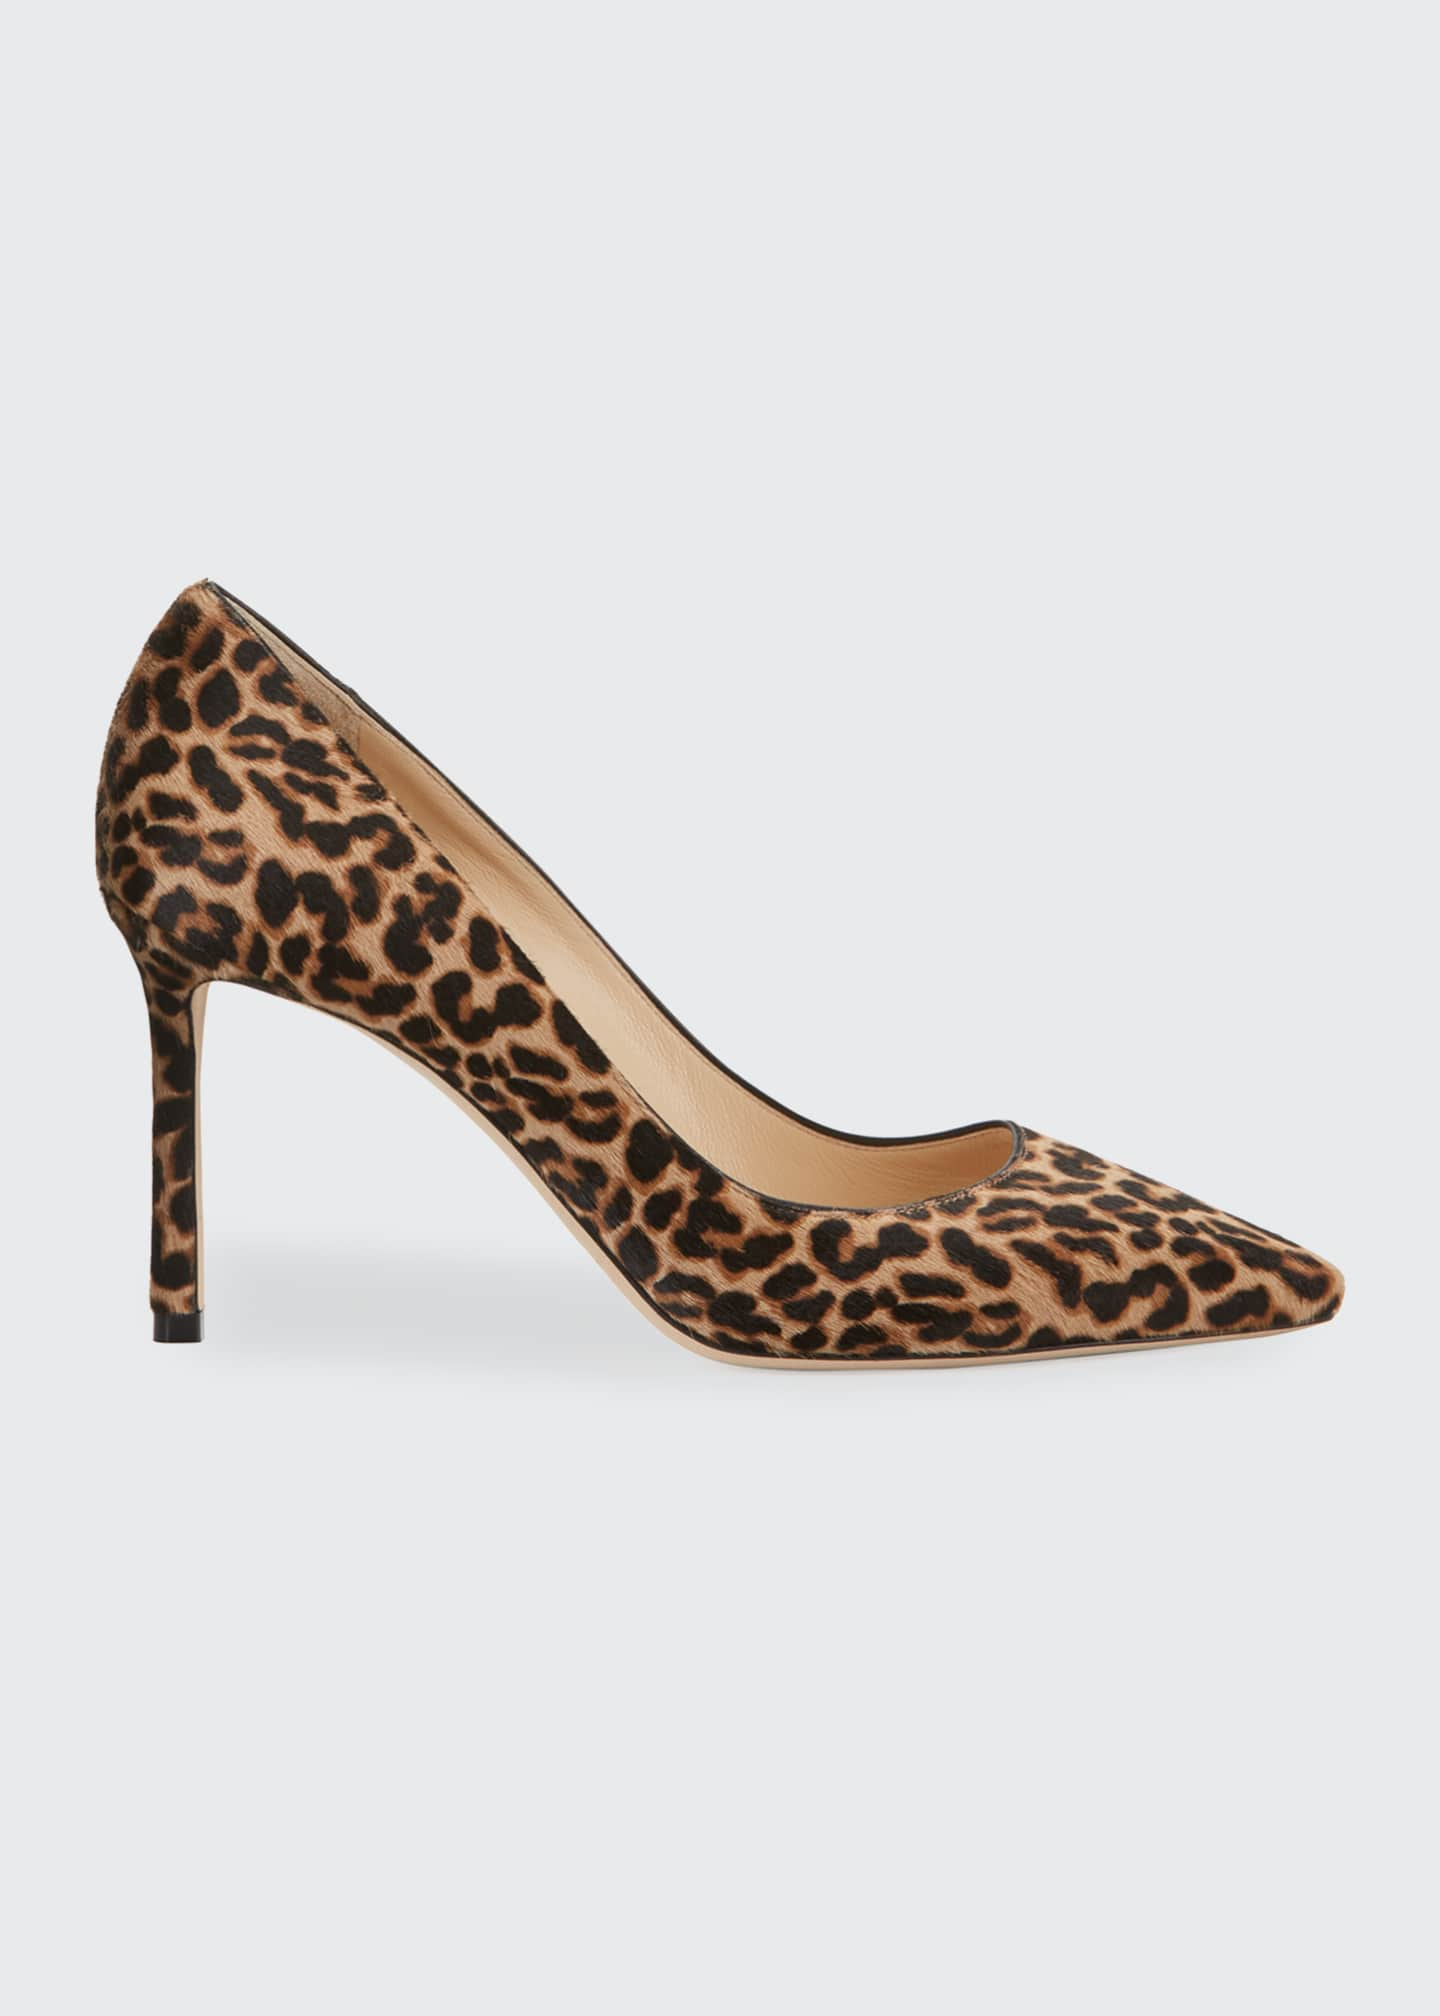 Image 1 of 3: Romy 85mm Leopard Print Pumps